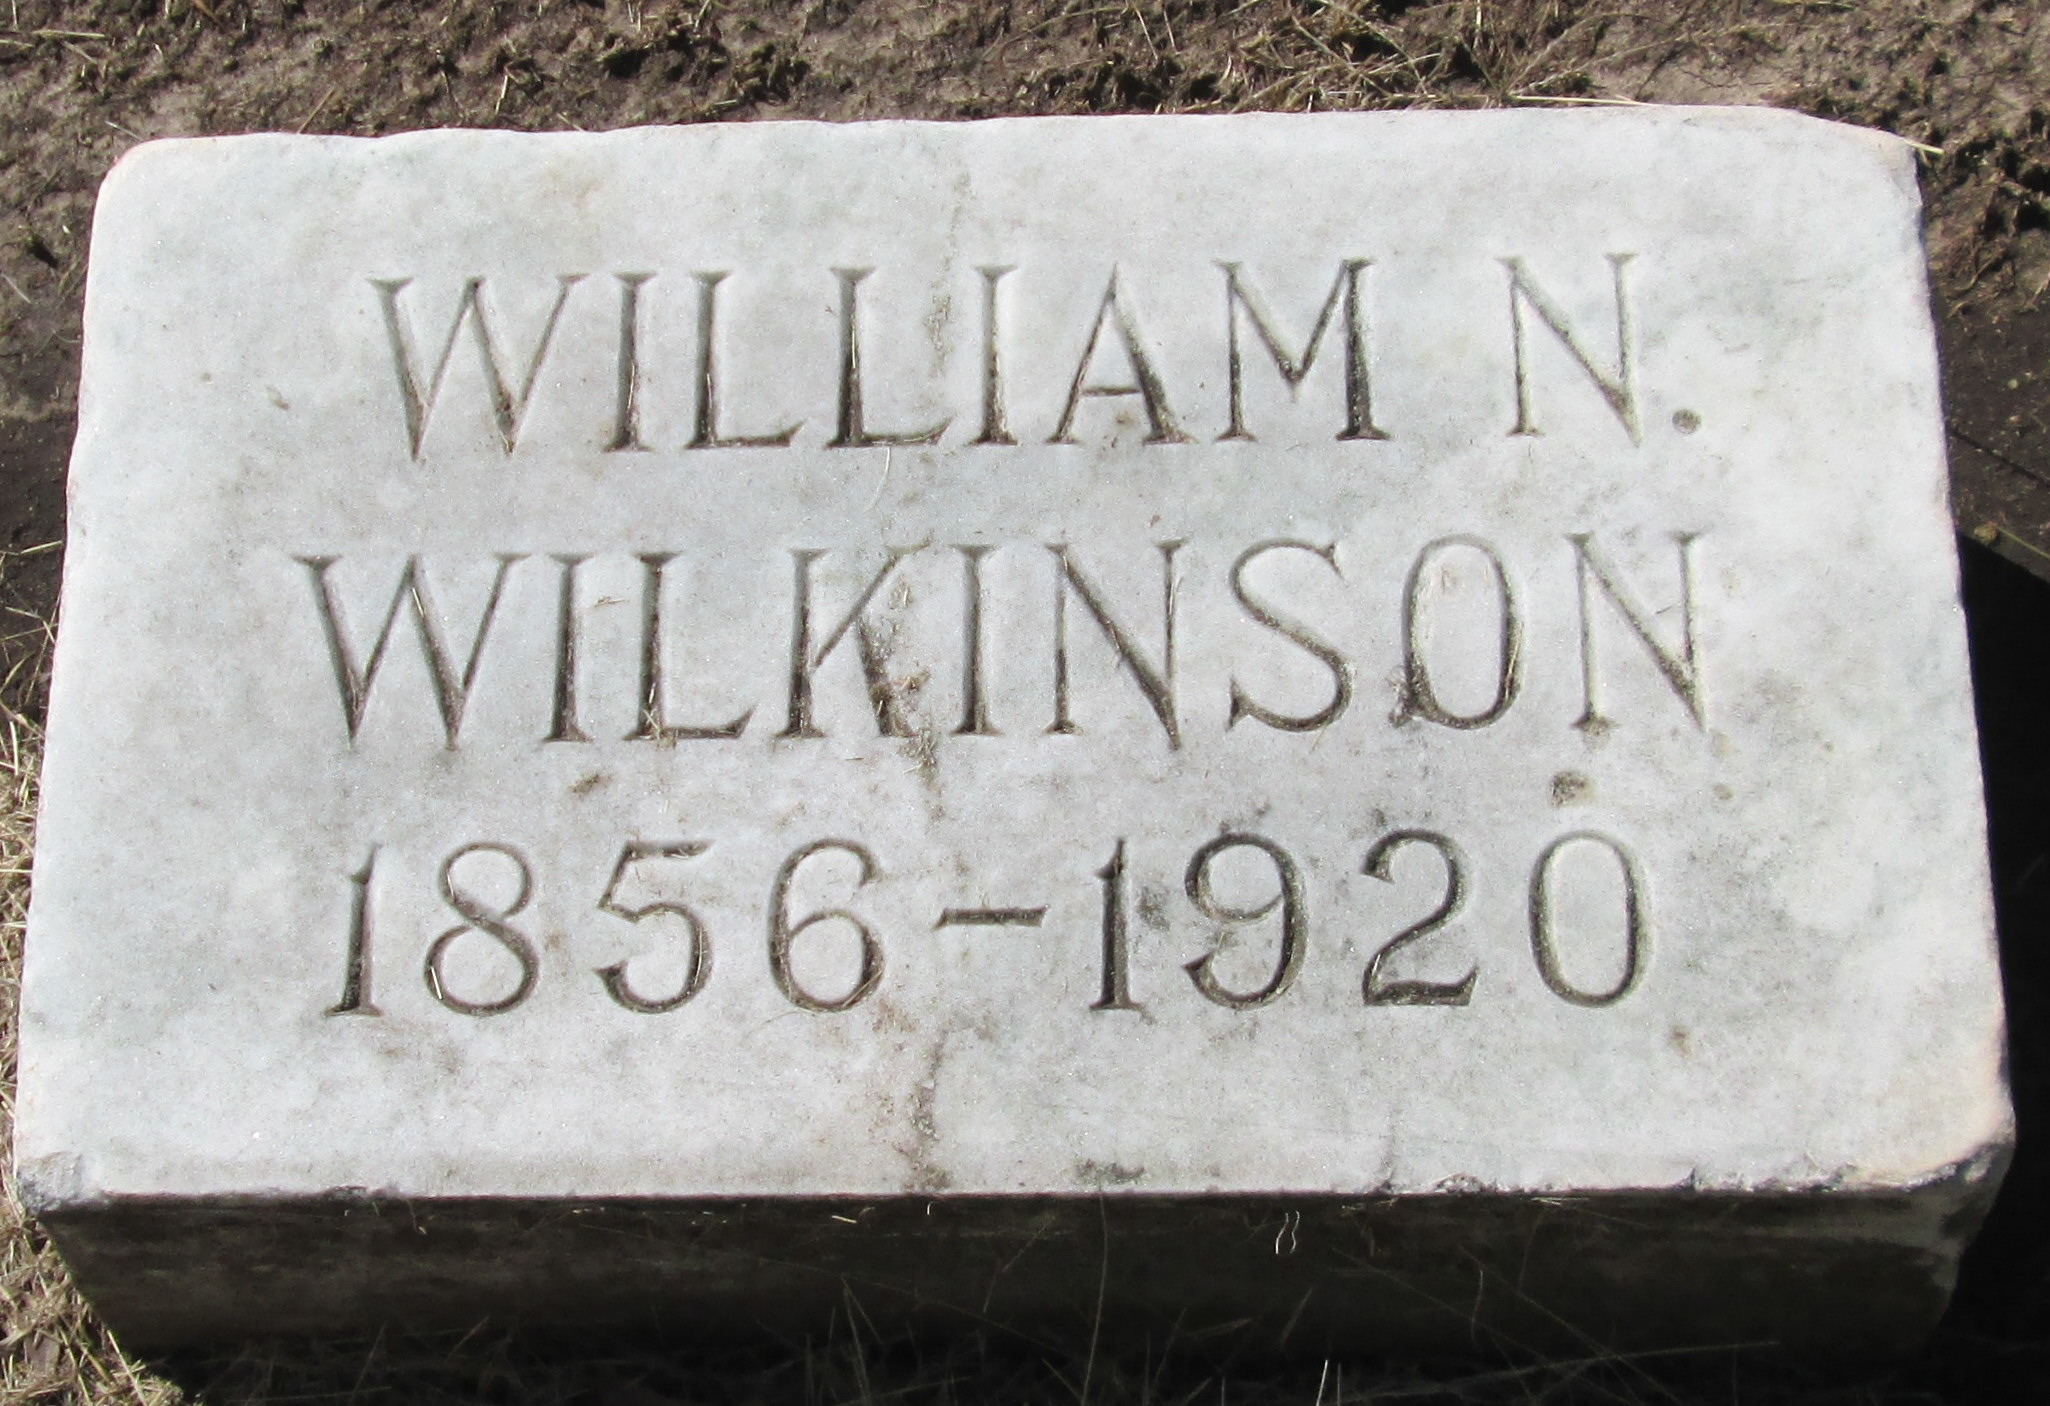 William Neal Wilkinson